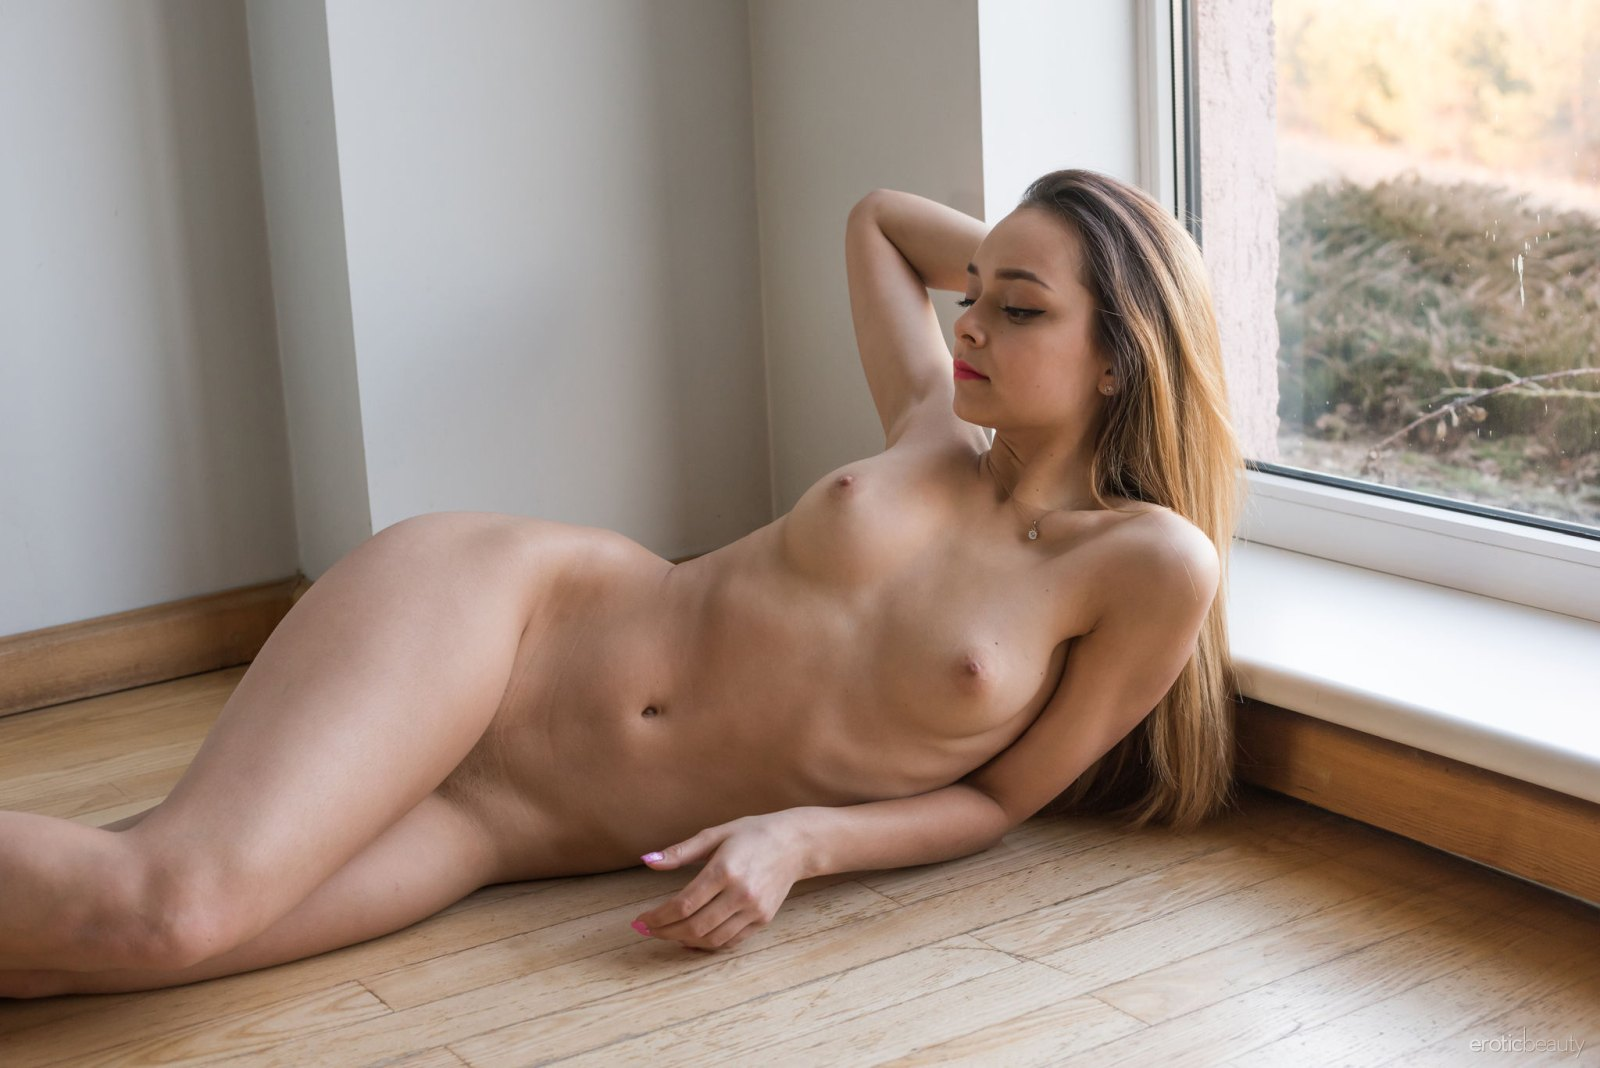 Free erotic beauties, old latinas pussy